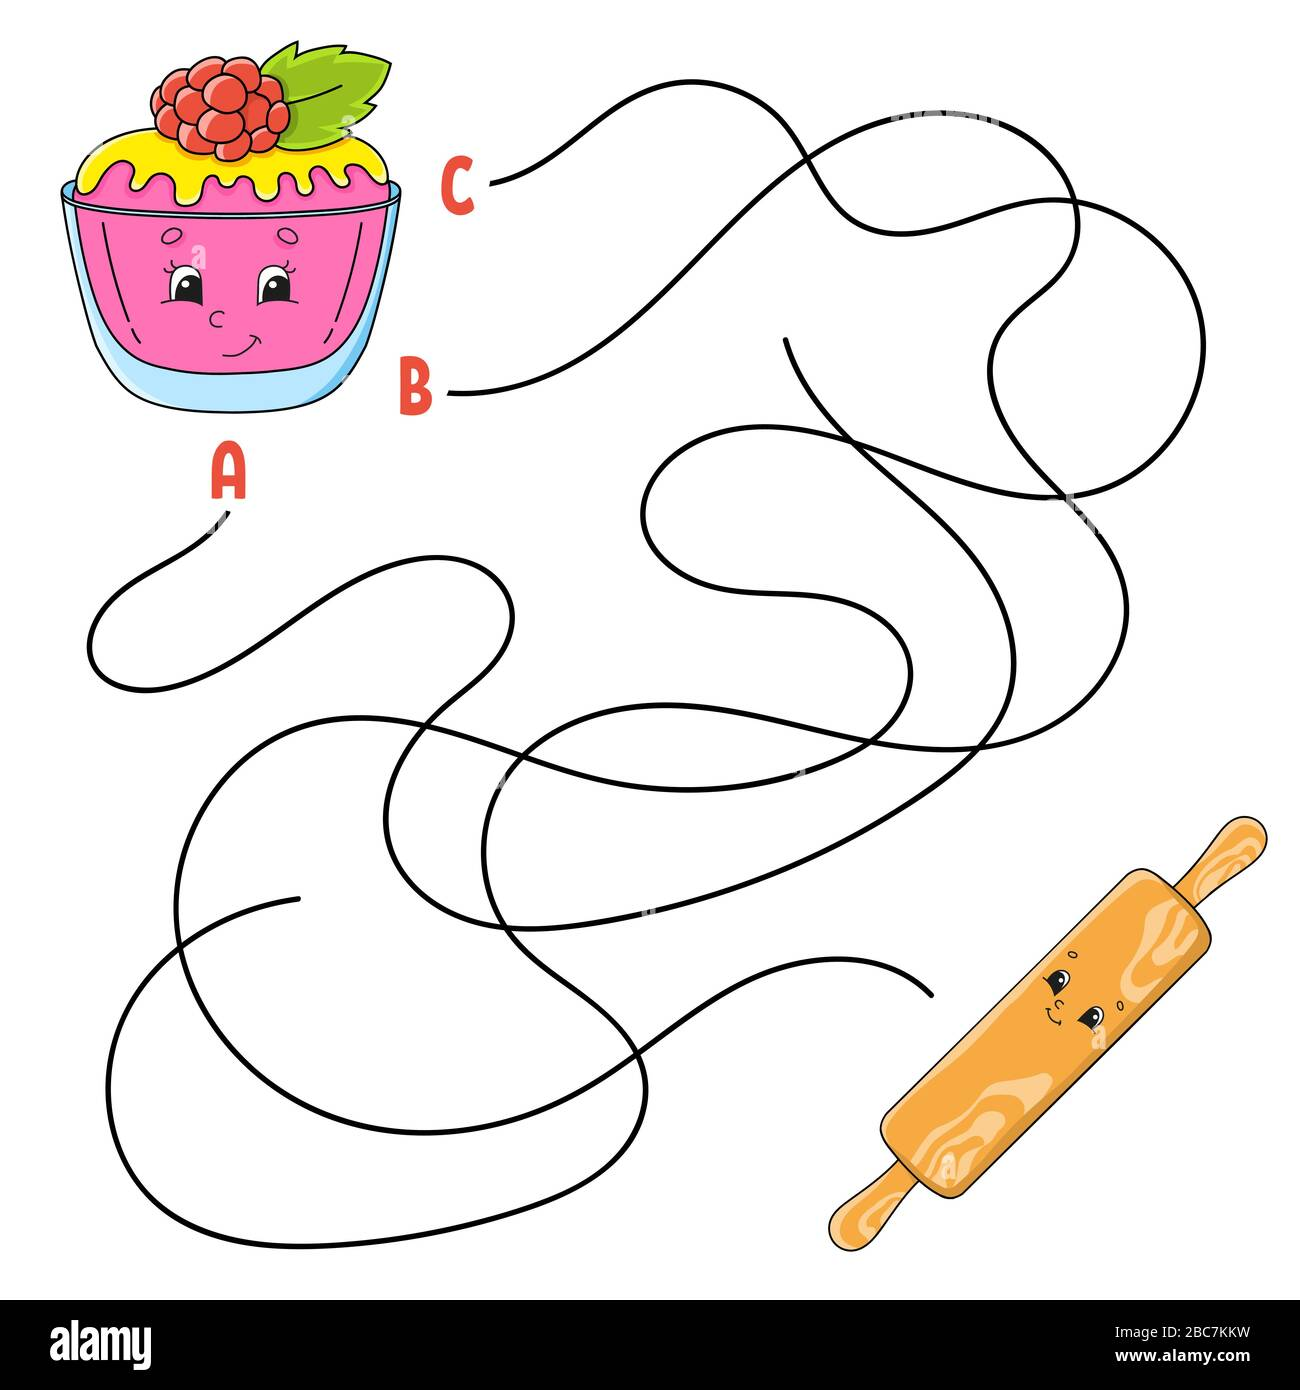 Easy Maze Cake And Rolling Pin Labyrinth For Kids Activity